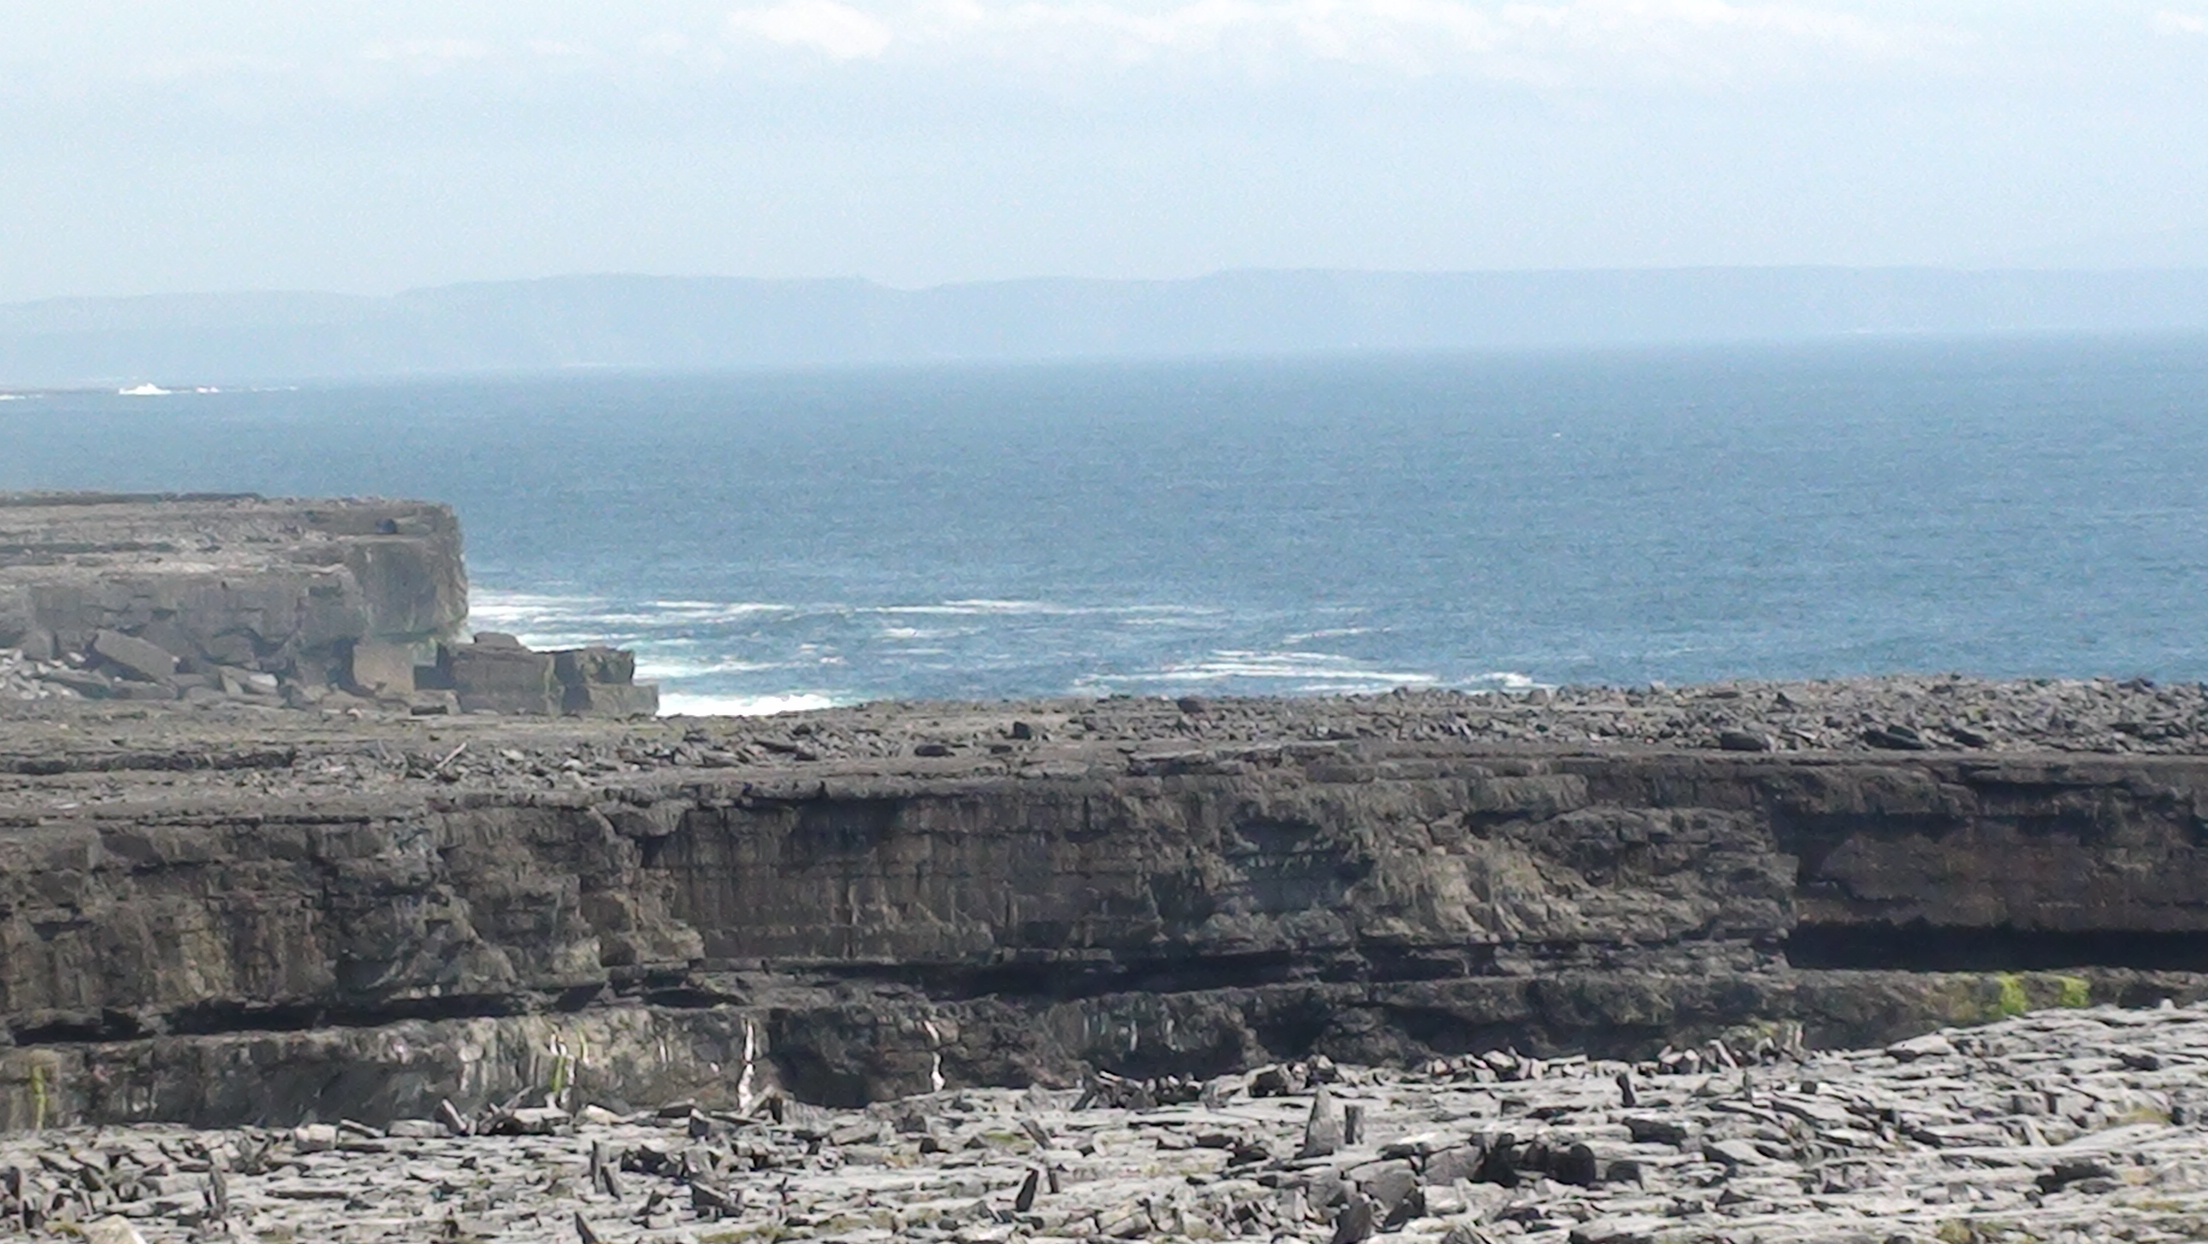 View from the cliffs of Inishmore